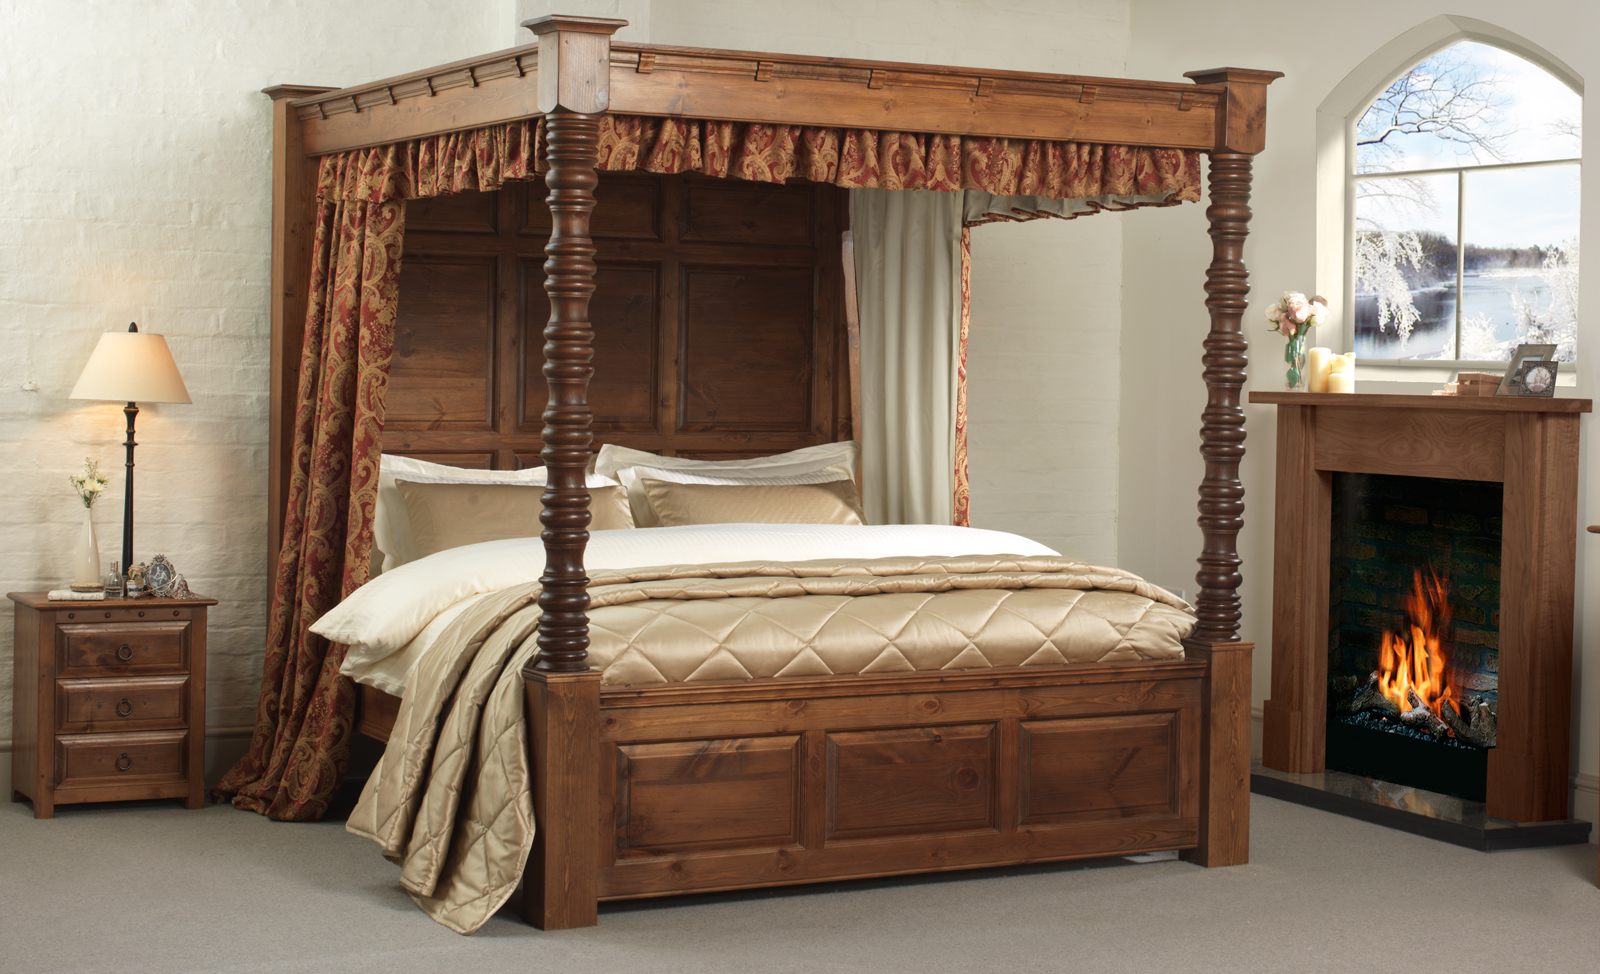 Buy Canopy Bed Australia